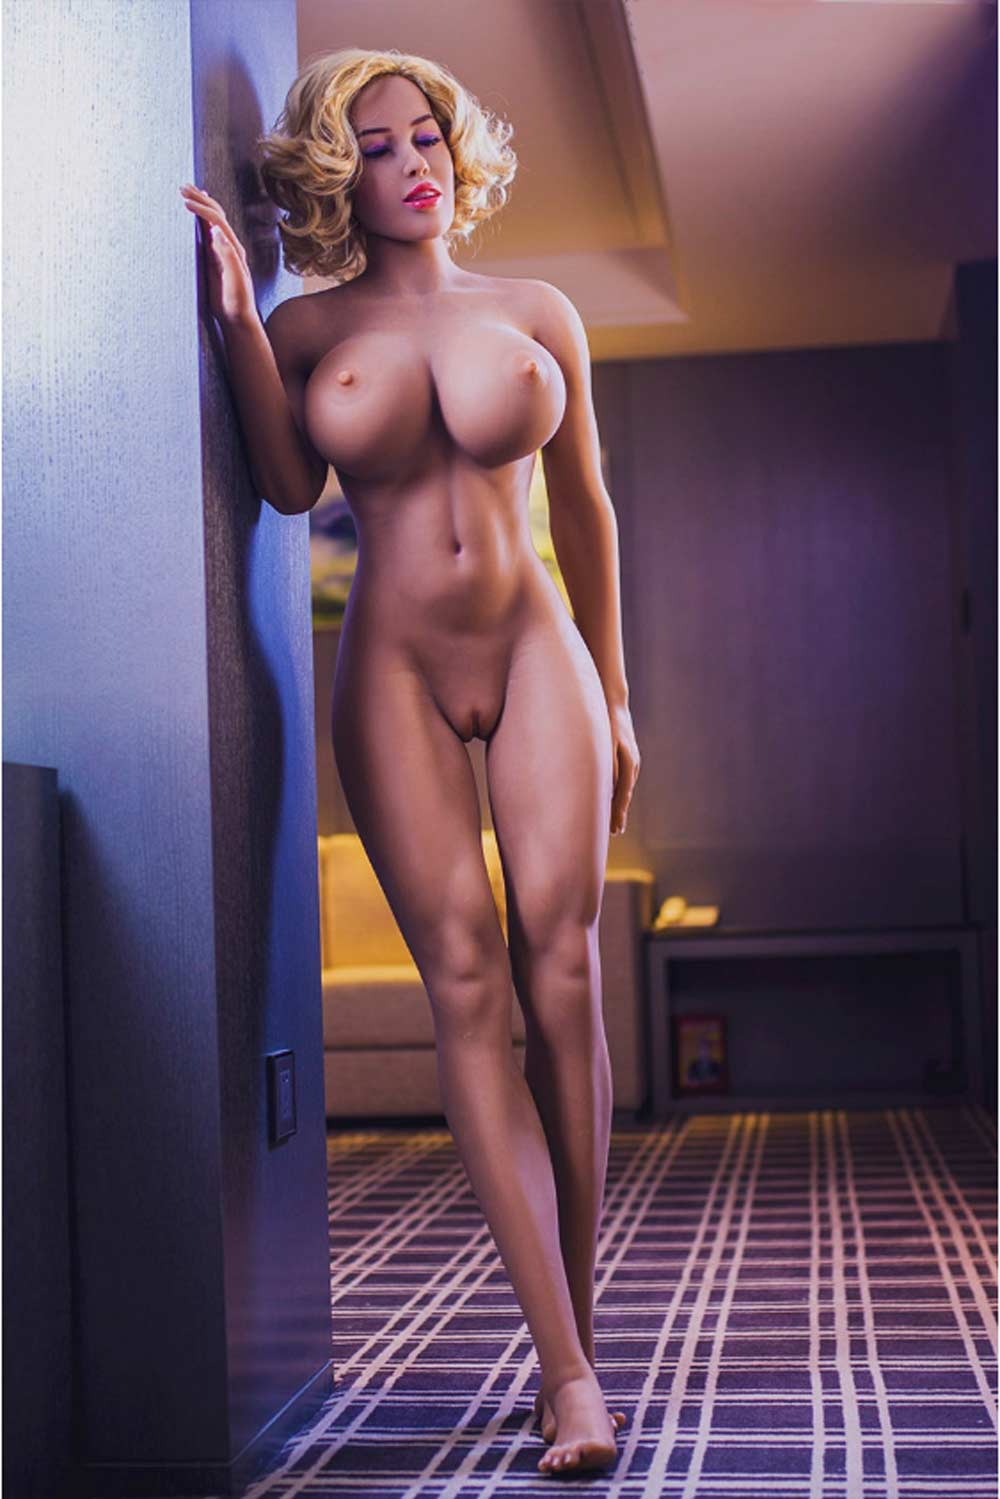 Sex doll with hands on the wall